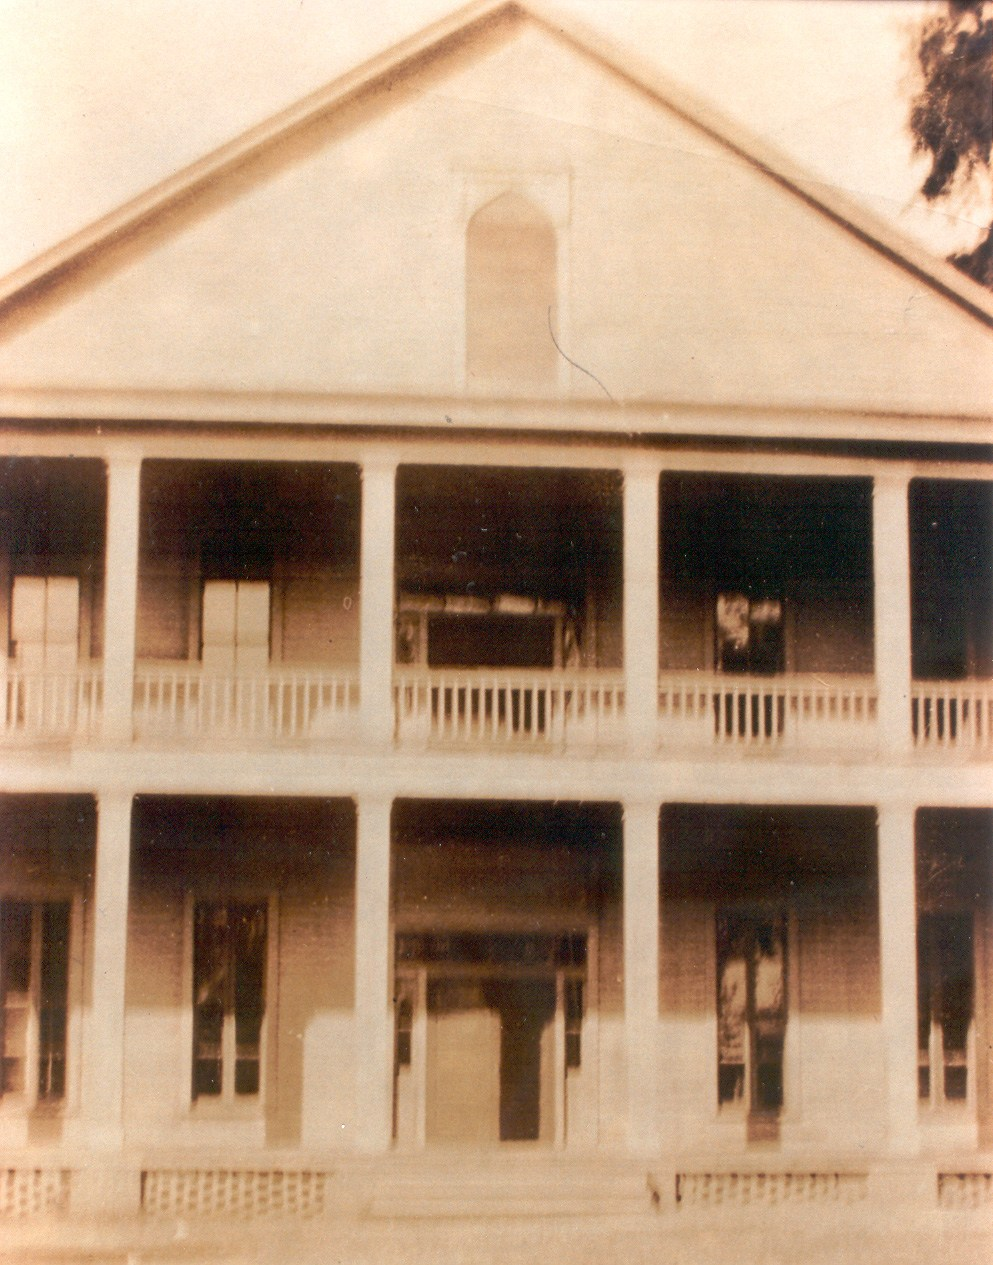 Porch on two story building